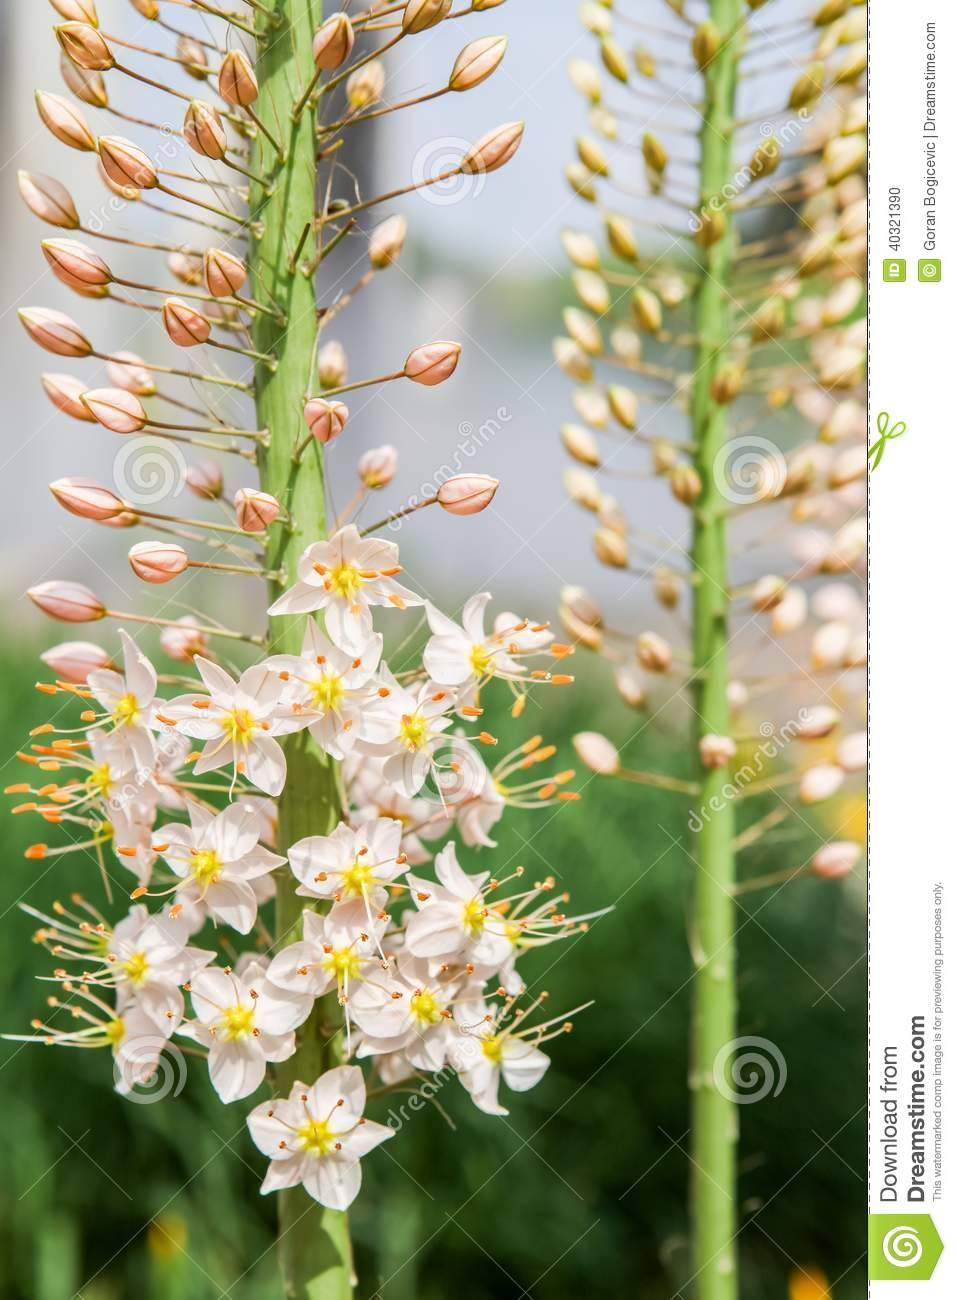 Foxtail Lily Eremurus Flowers Stock Photo Image Of Foxtail